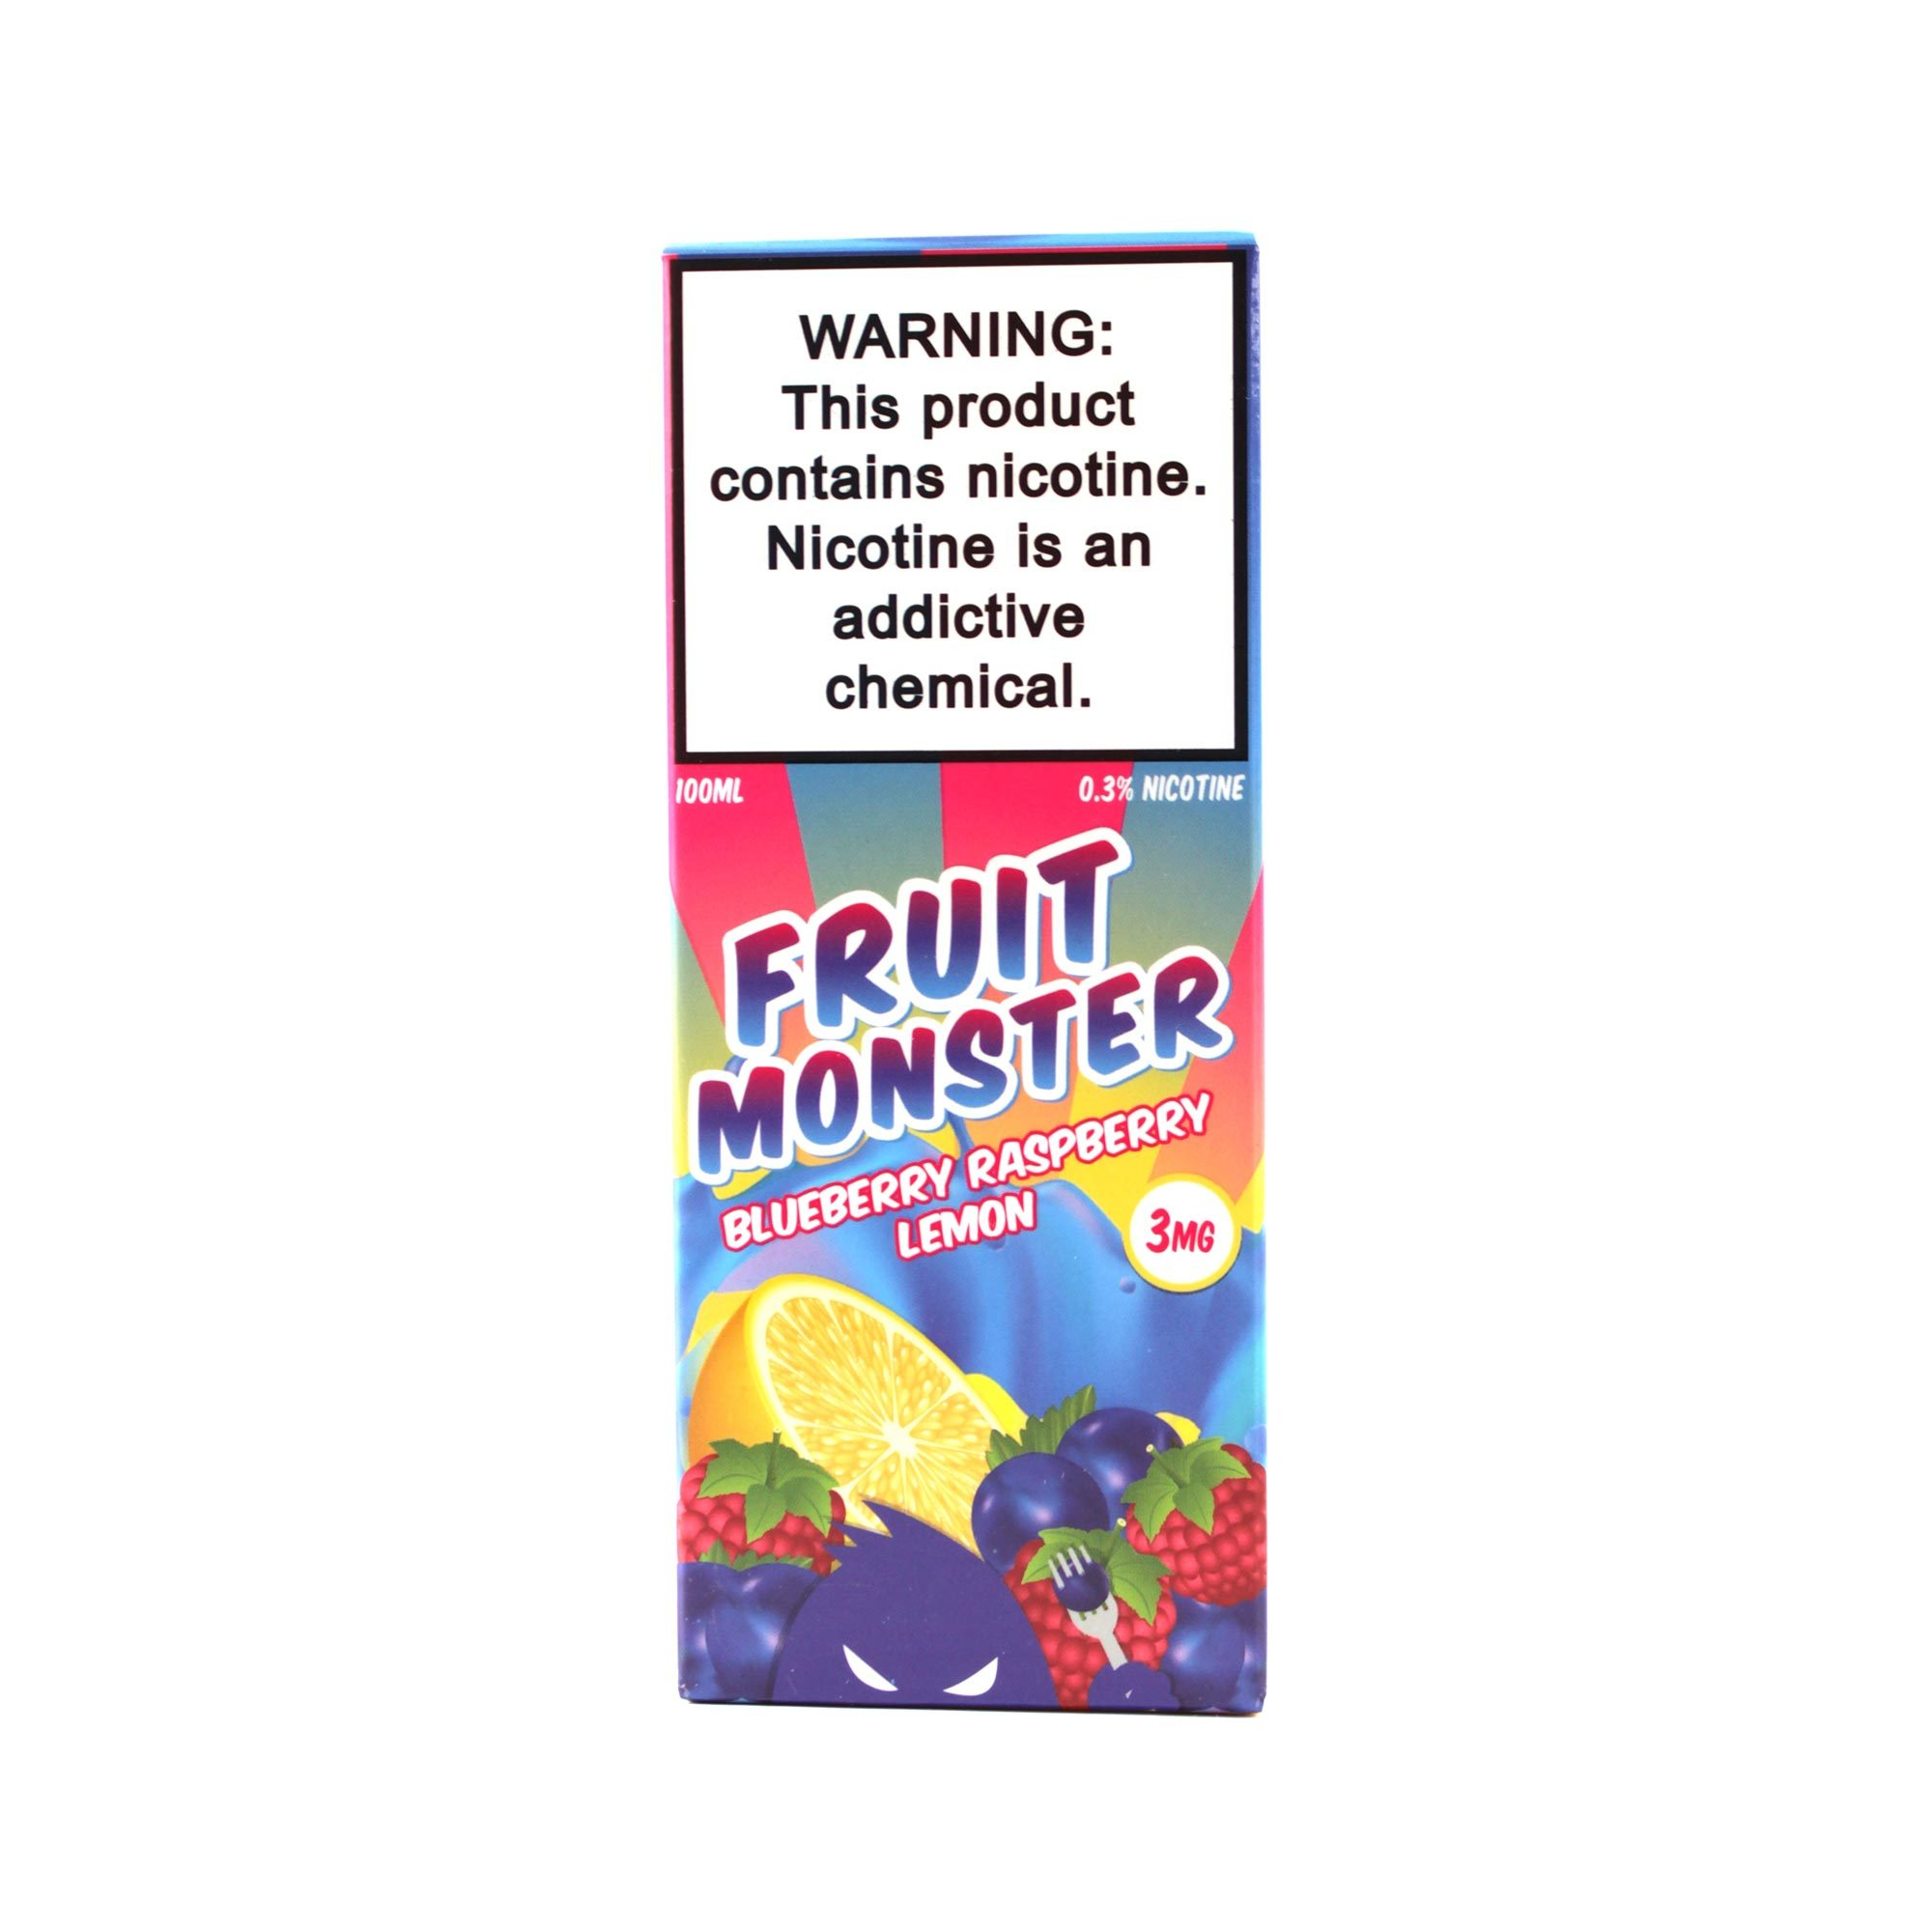 Жидкость FRUIT MONSTER Blueberry Raspberry Lemon